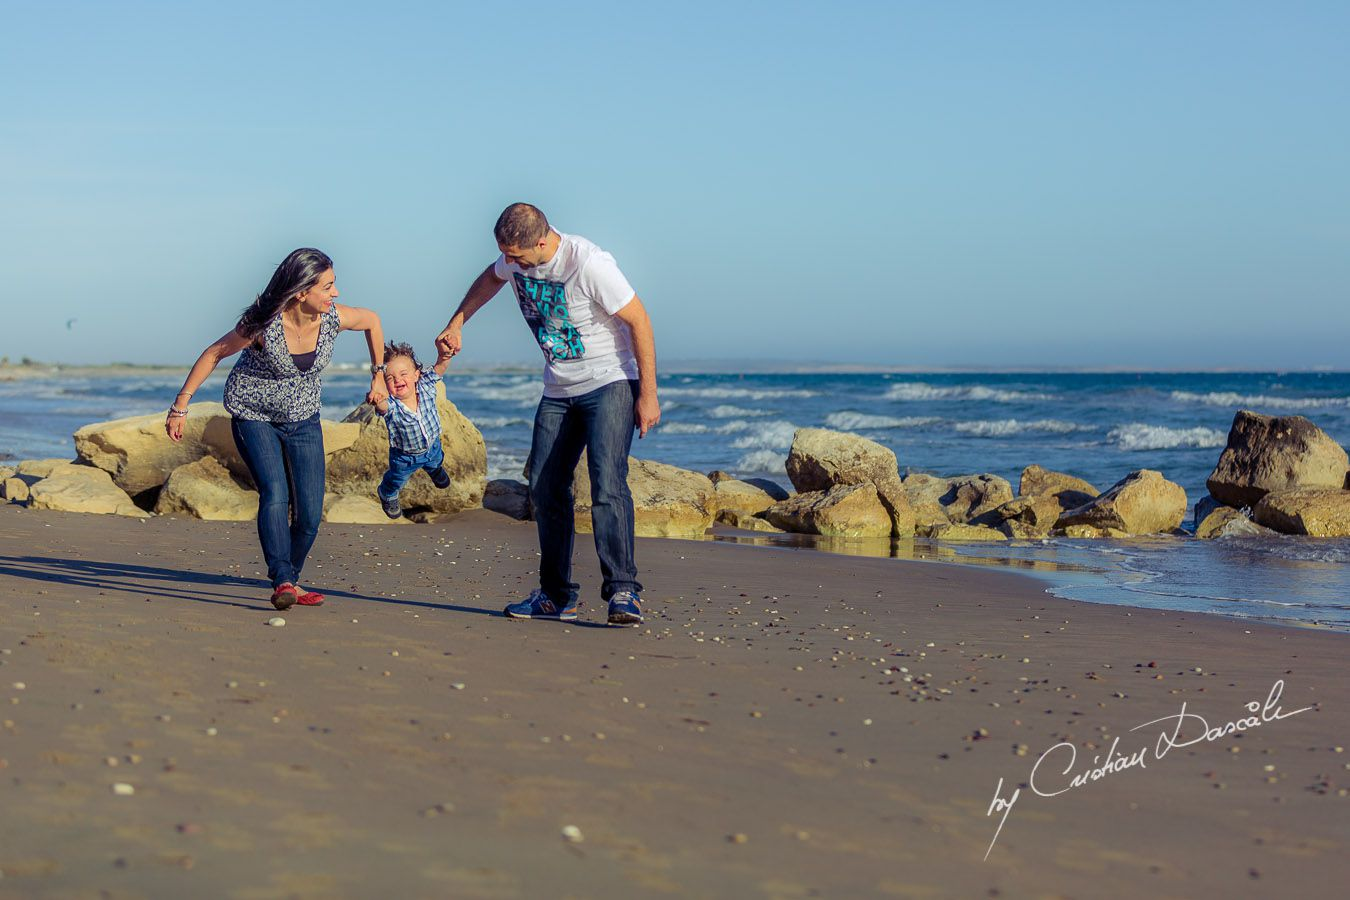 Maria, George & Harry - Having fun at Curium Beach, Cyprus. Photographer: Cristian Dascalu